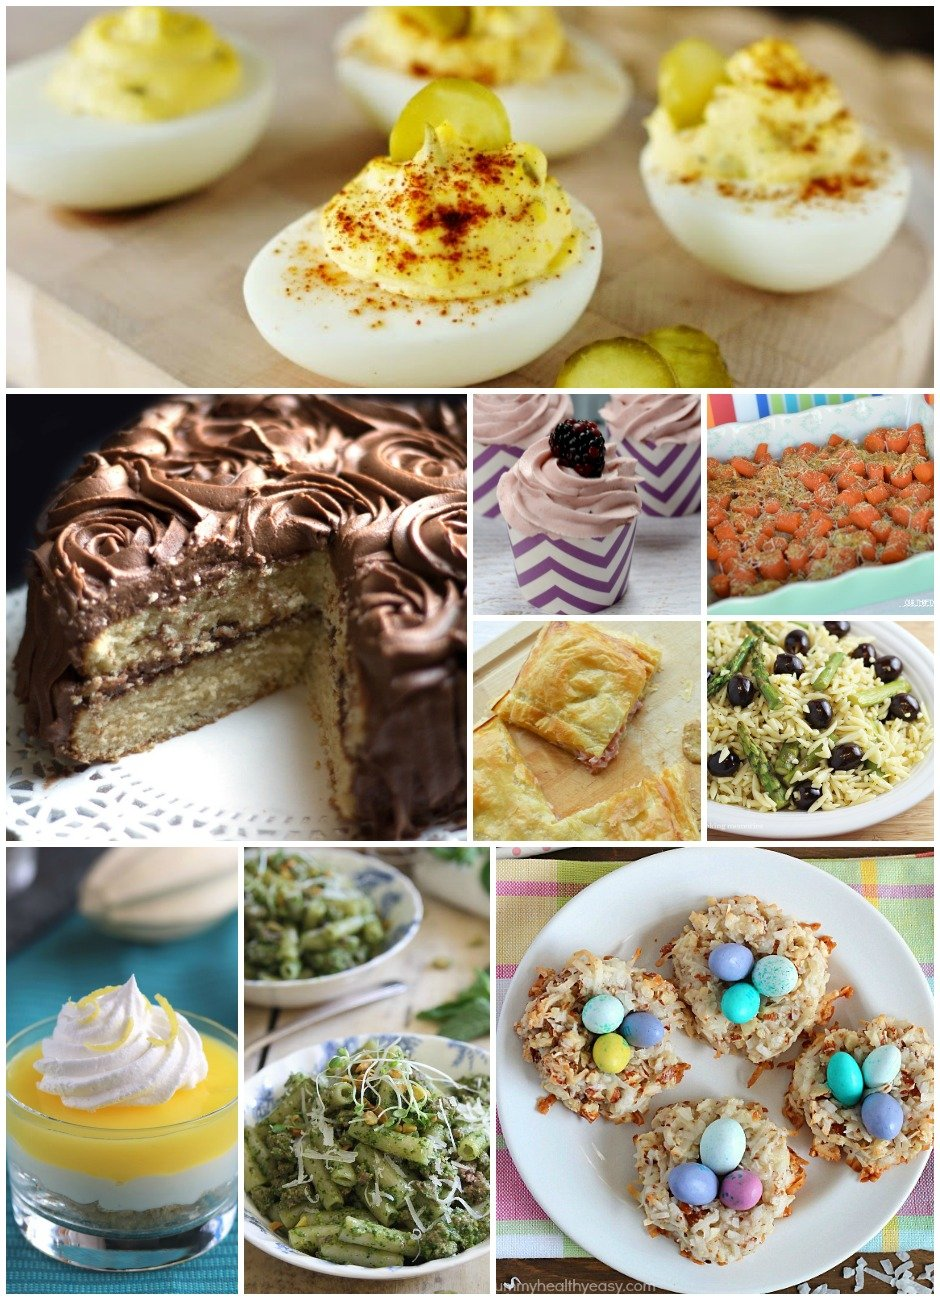 Easy Easter Recipes- Enjoy this wonderful collection of easy Easter recipes to help you plan your Easter Dinner. This collection contains everything from appetizers to desserts and will be a go-to reference for all!